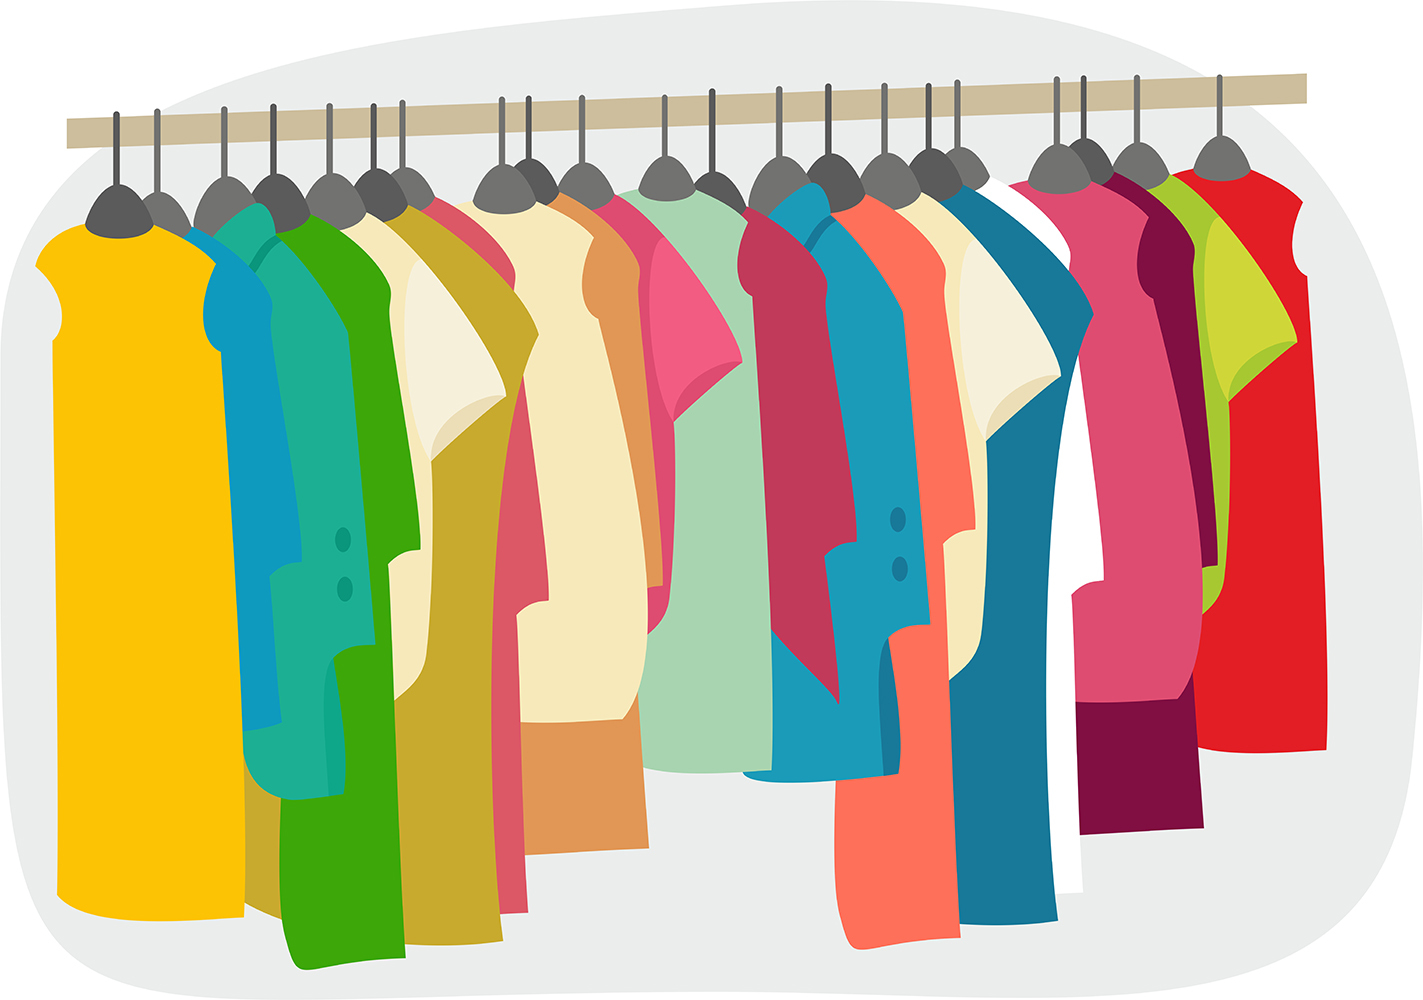 clipart stock Clothing clipart. Free clothes cliparts download